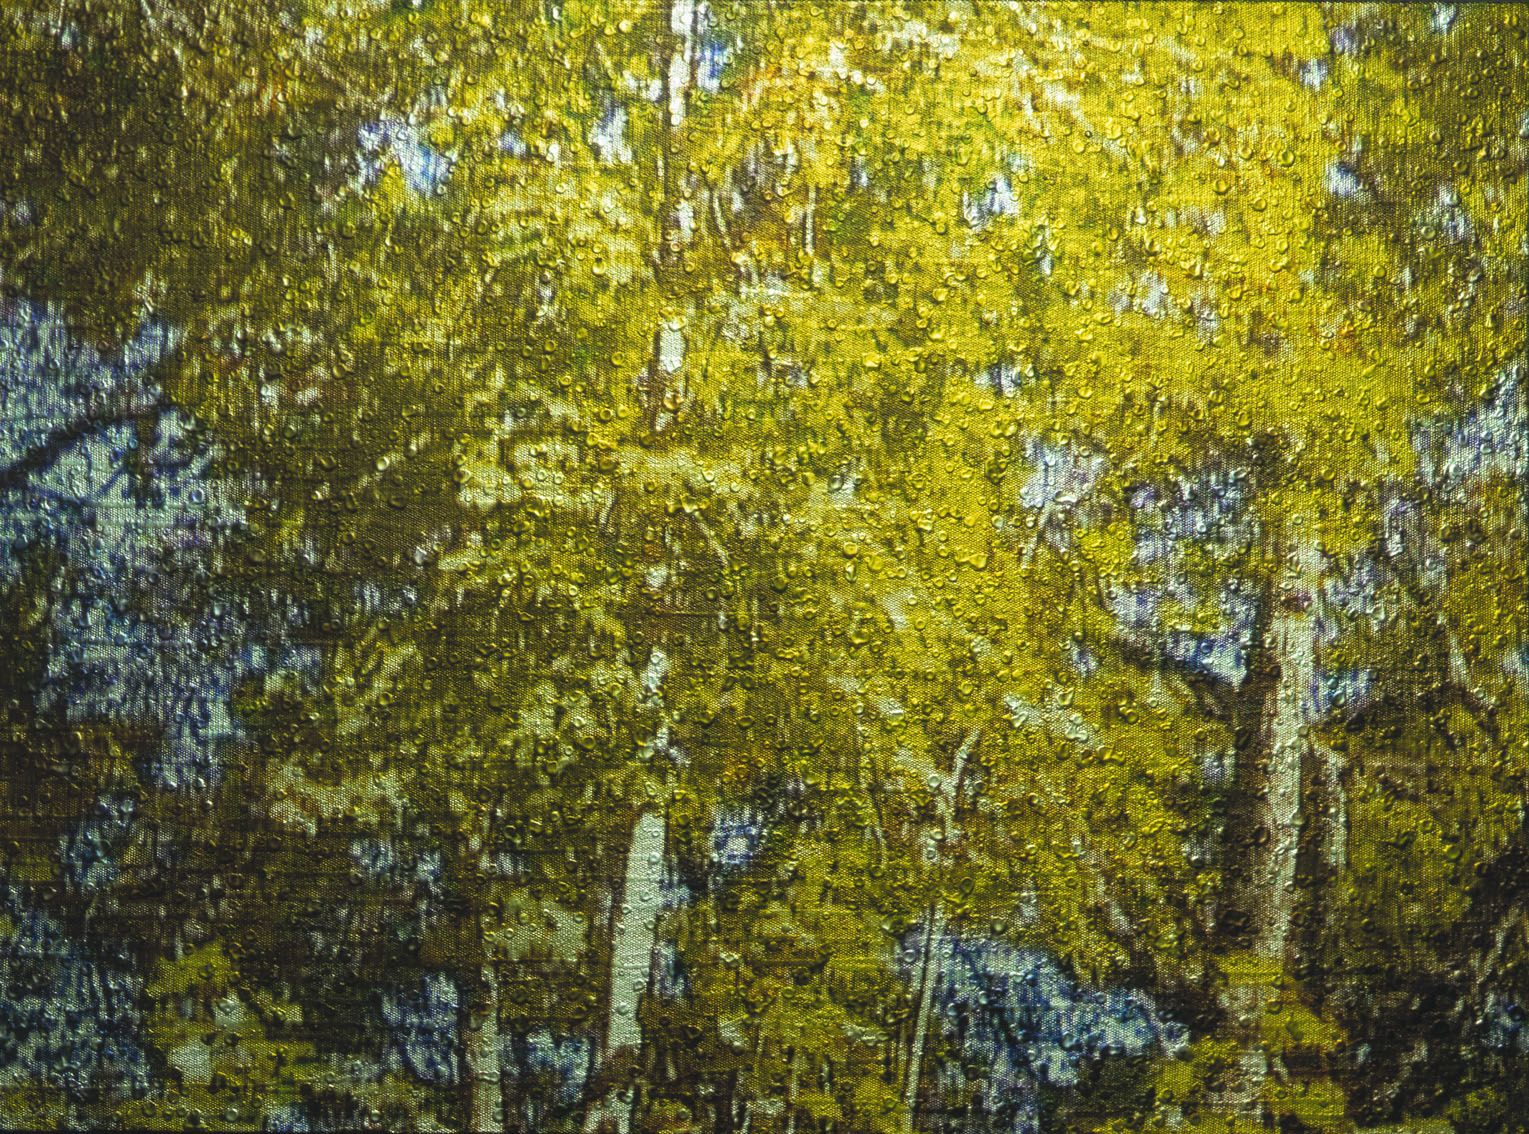 Gold / Landscape #9, 2003, Video projection, oil and enamel on linen